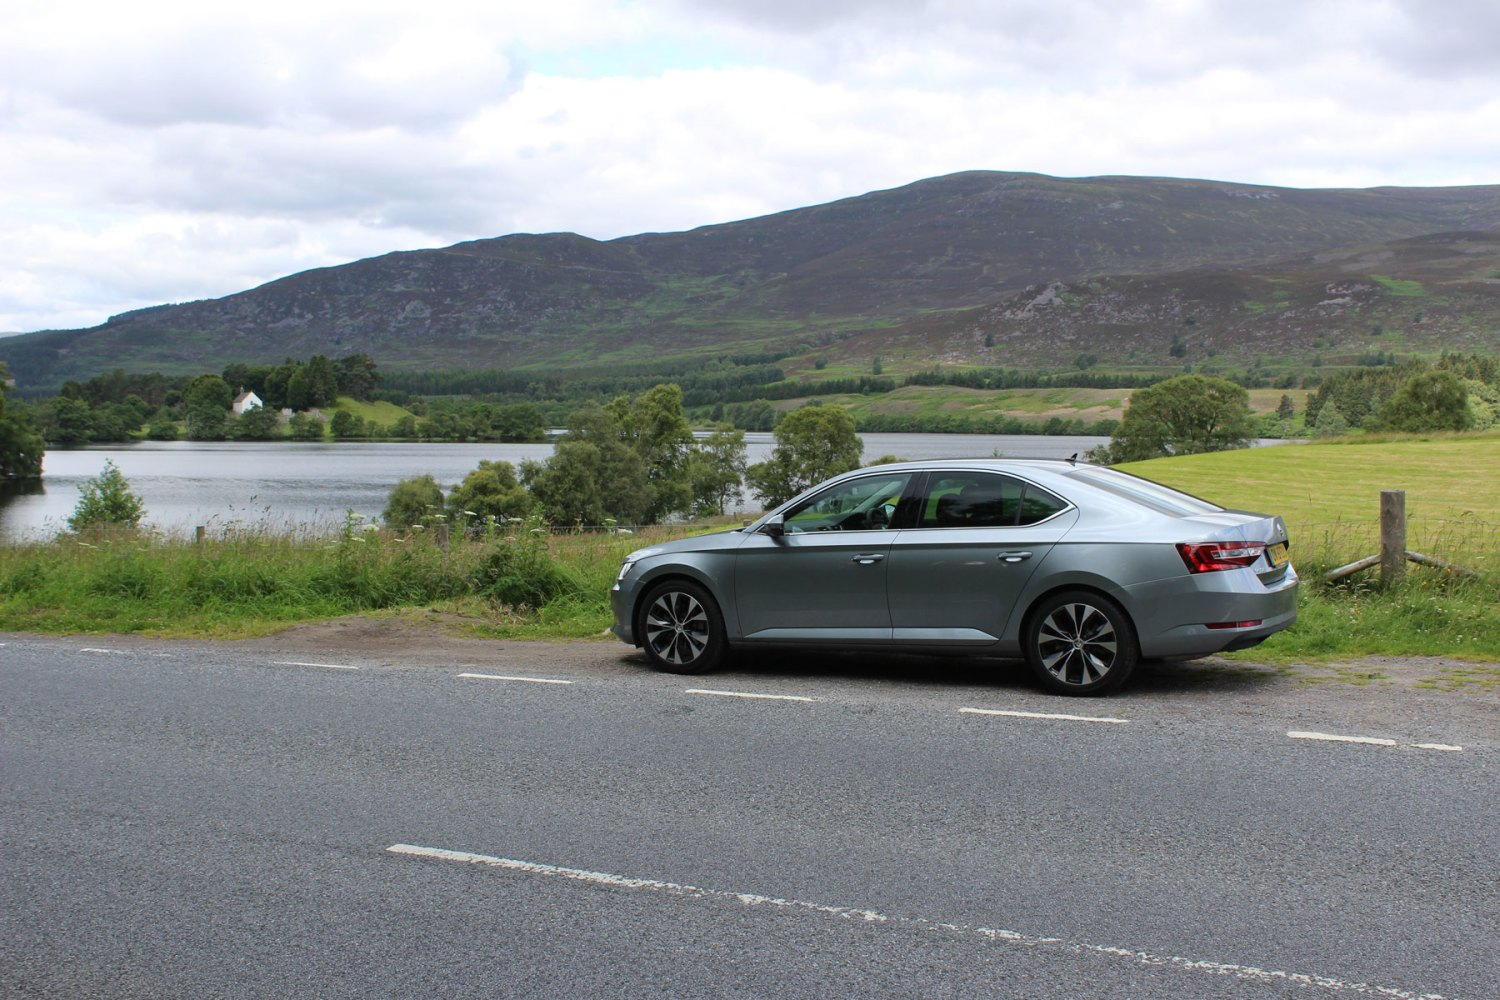 02_Skoda_Superb_Journey